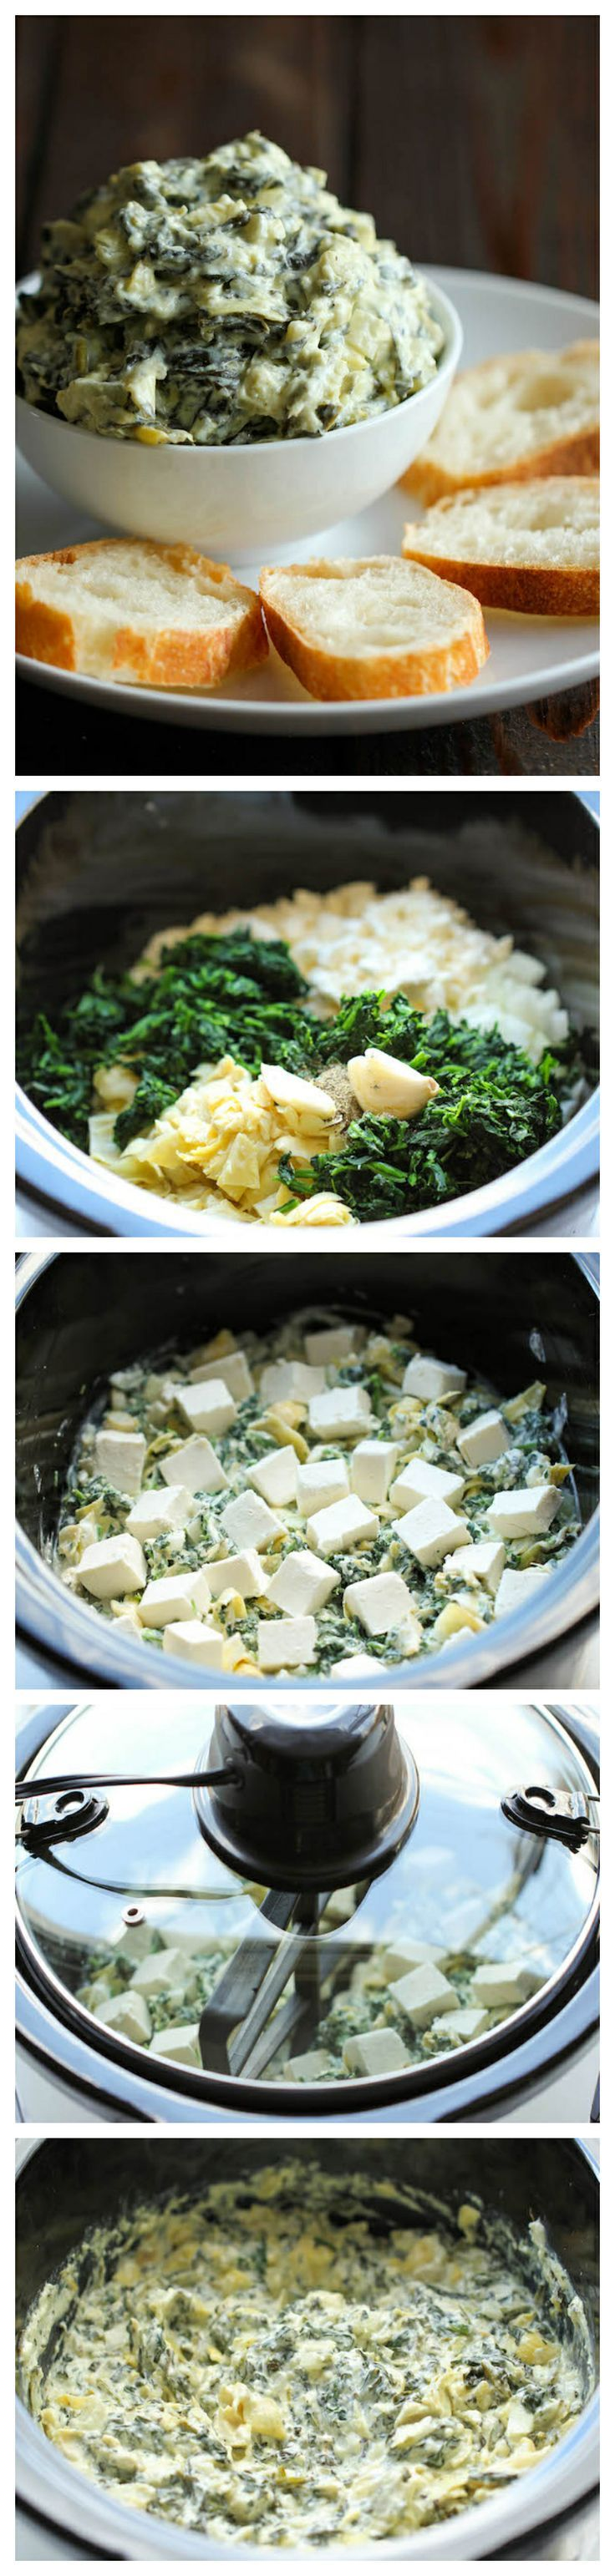 SLOW COOK spinach artichoke dip http://sulia.com/my_thoughts/eade27ee-a878-4349-9077-06734a6ec925/?source=pin&action=share&ux=mono&btn=big&form_factor=desktop&sharer_id=0&is_sharer_author=false